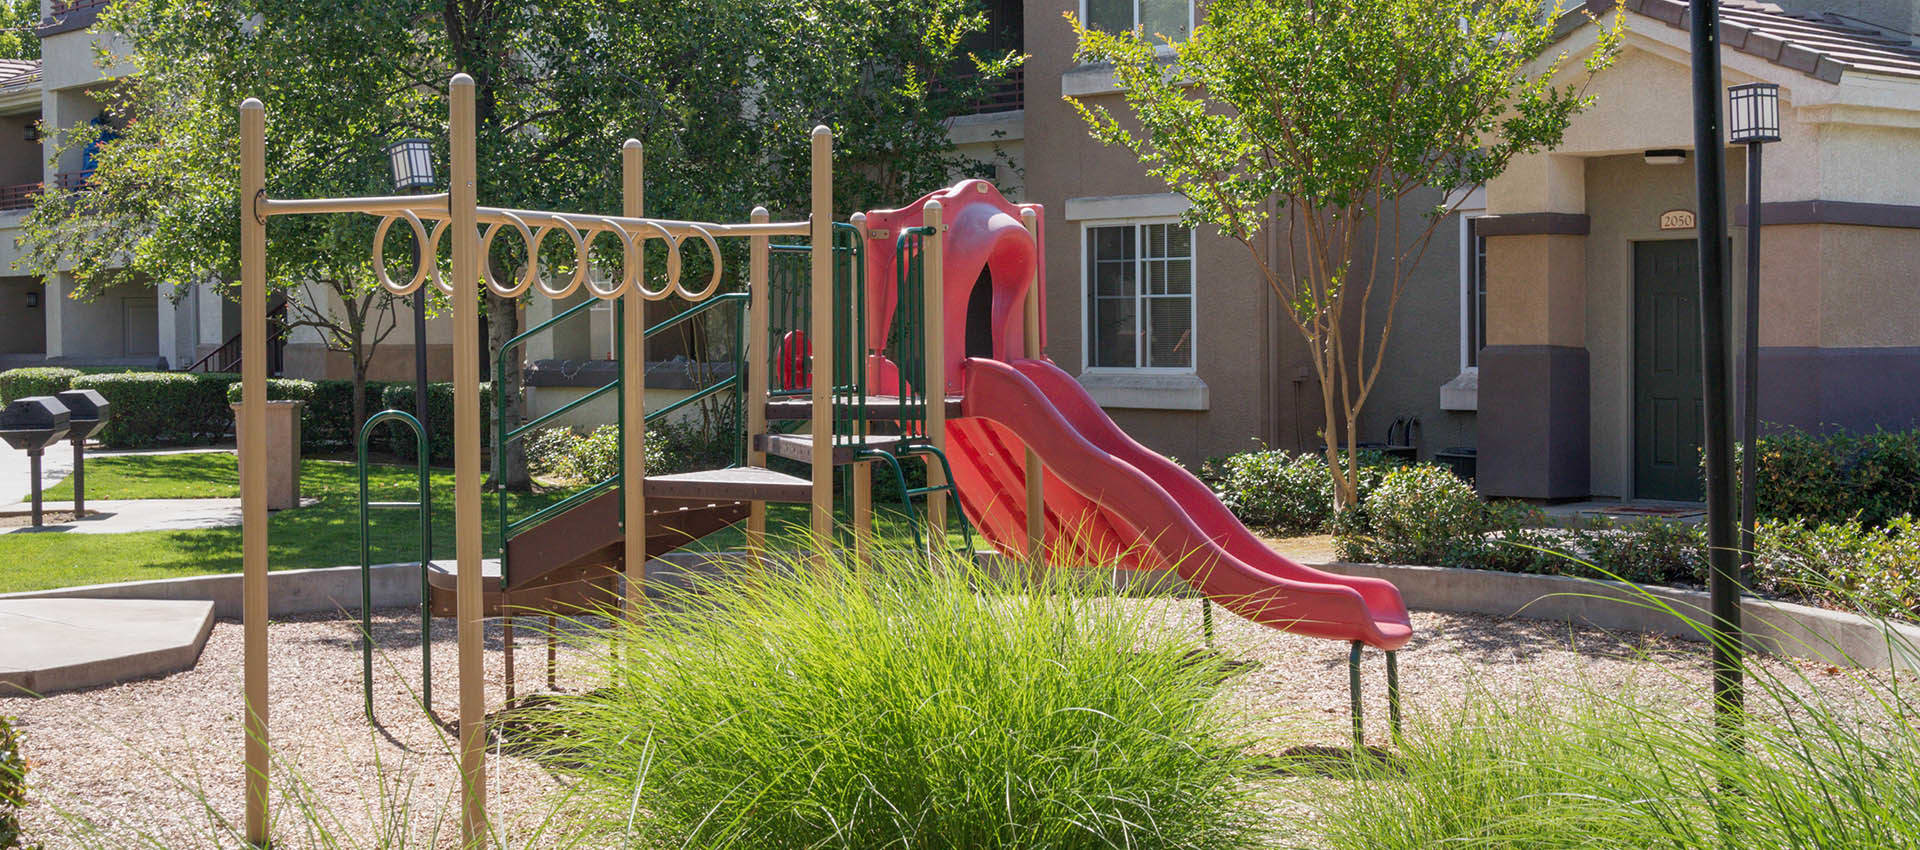 Playground at The Artisan Apartment Homes